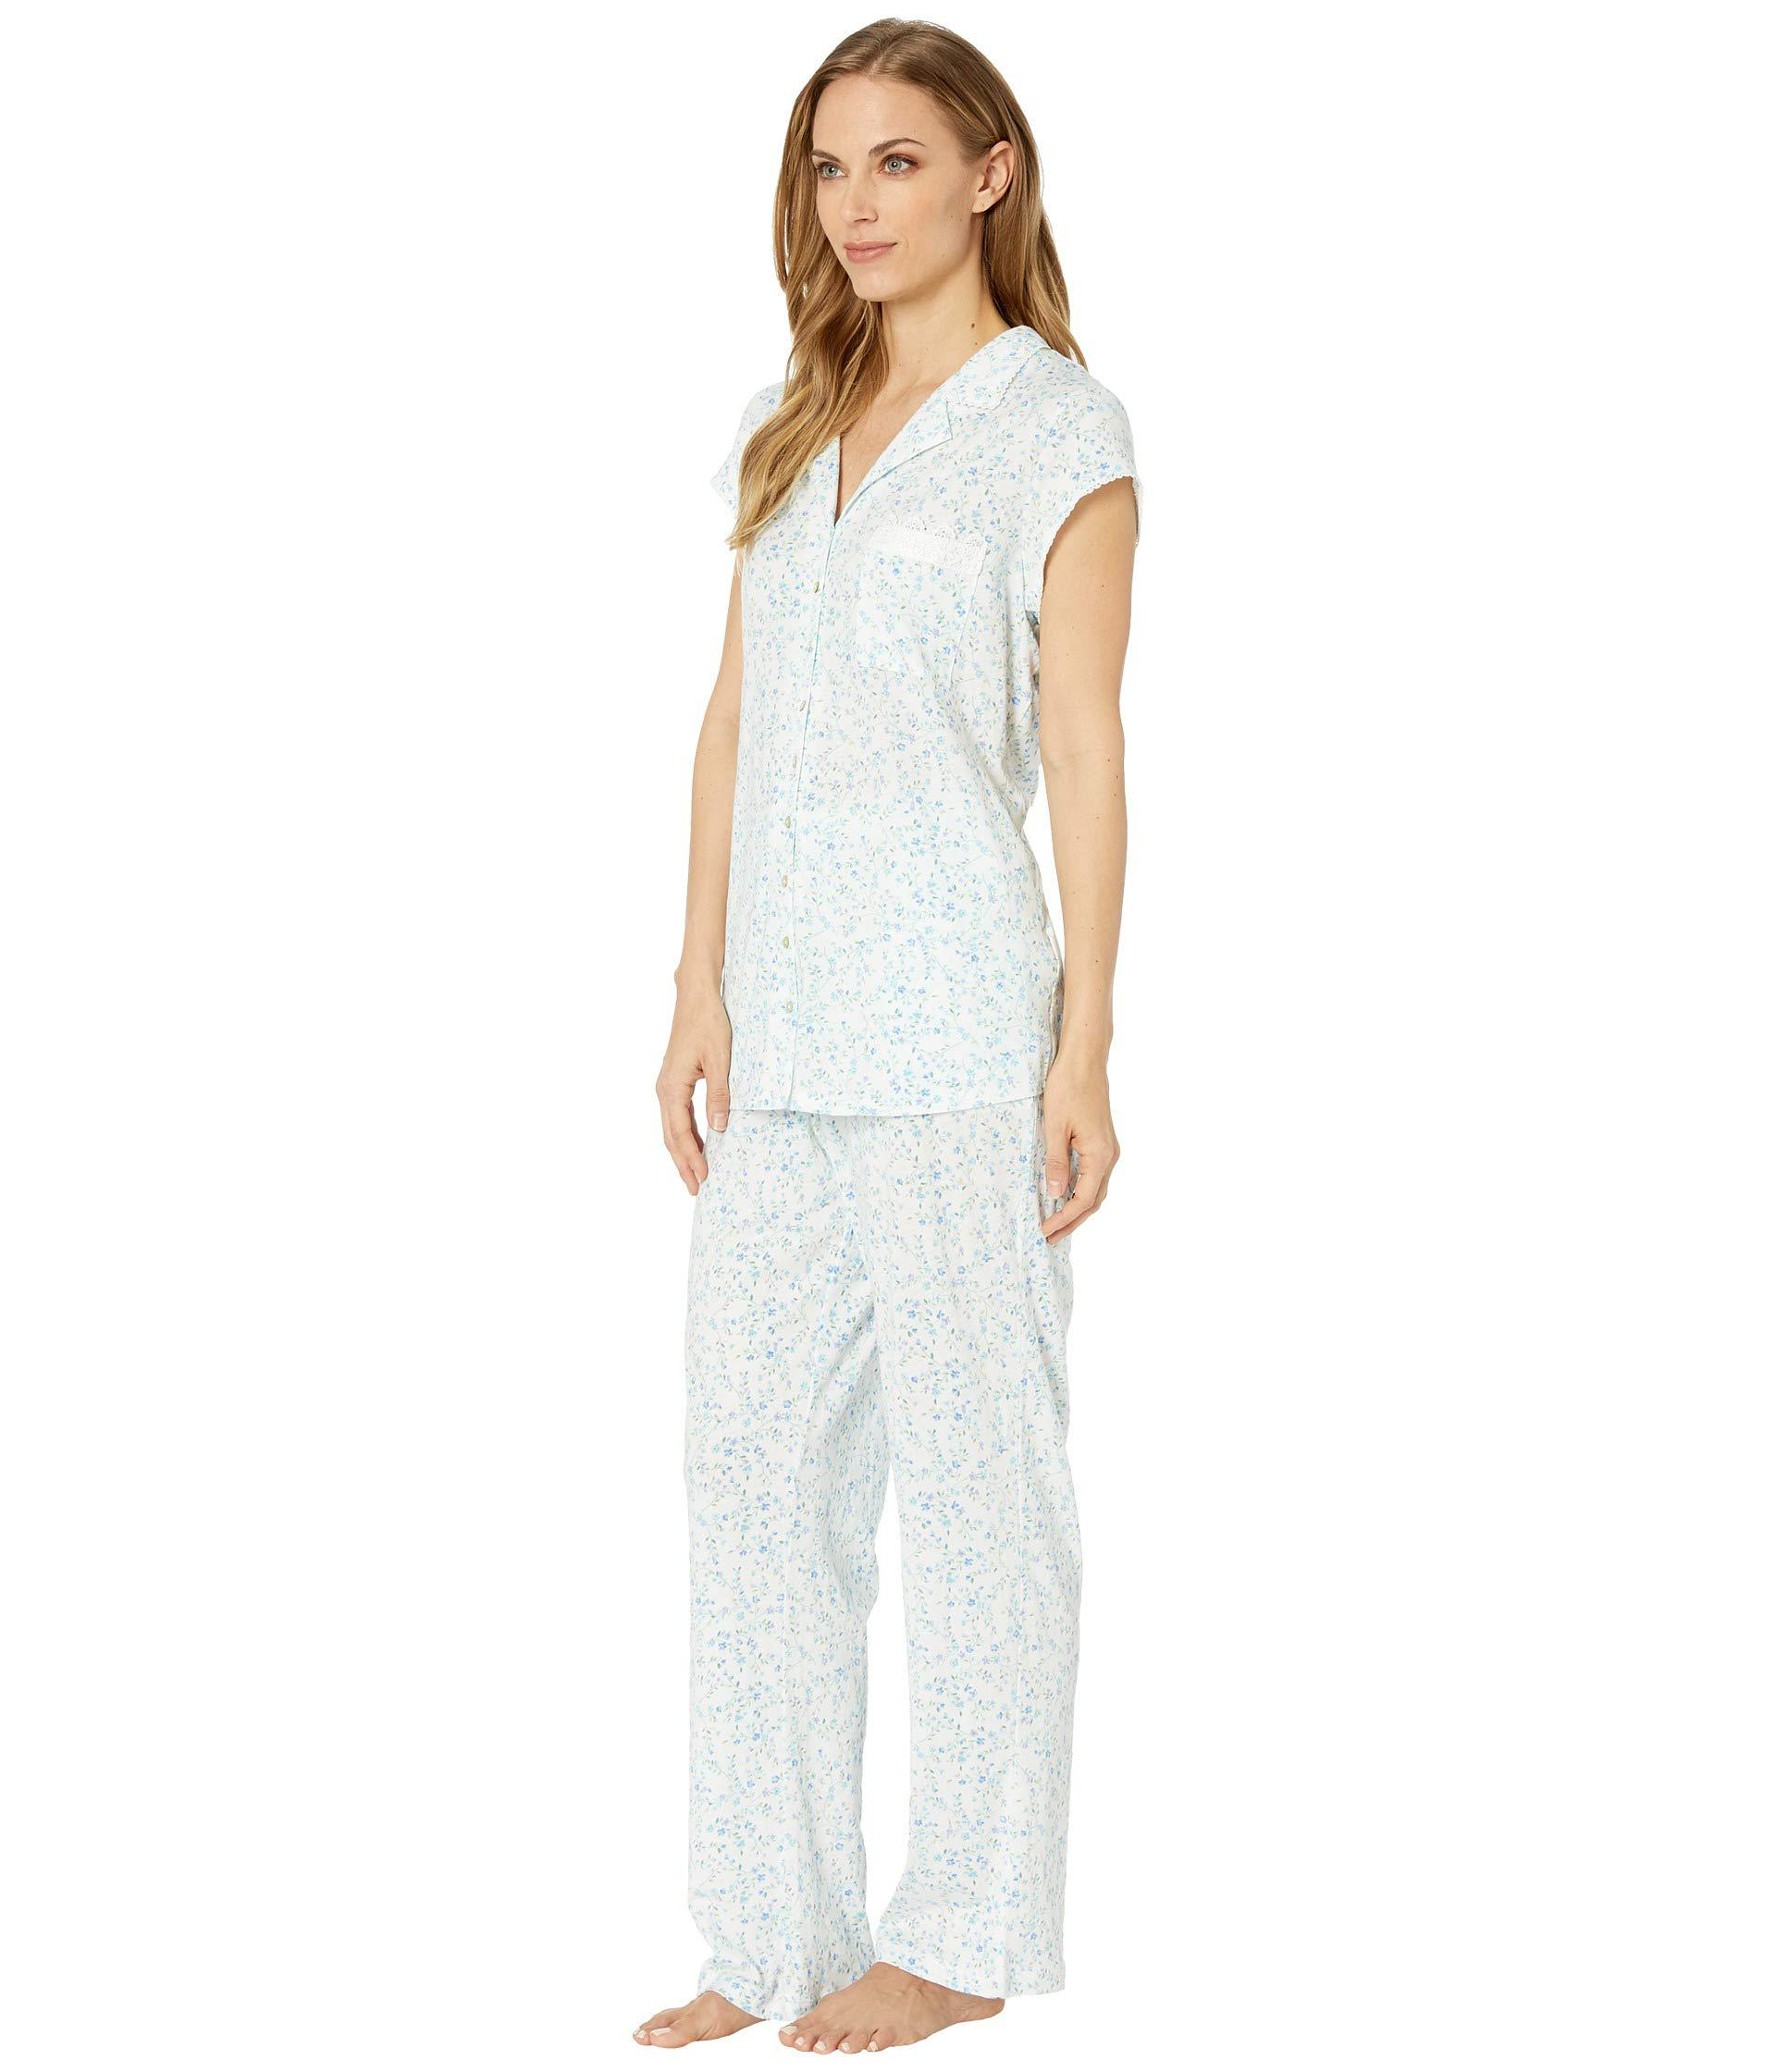 Lyst - Eileen West Cotton Modal Notch Collar Pajama Set (white Multi Floral  Scroll) Women s Pajama Sets in White a8b74fa96